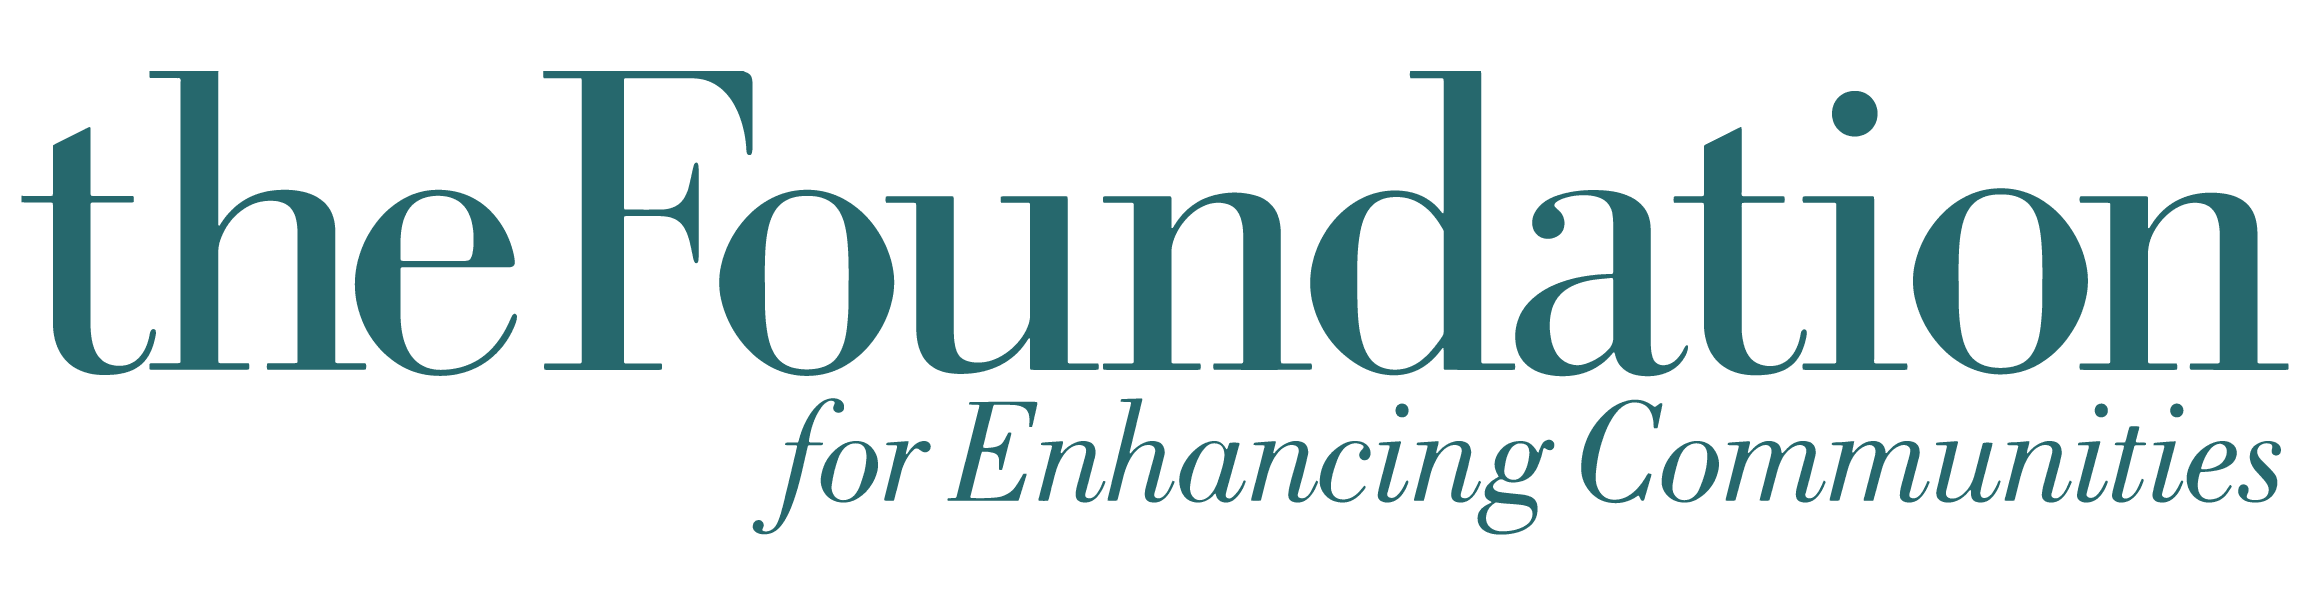 Foundation for Enhancing Communities